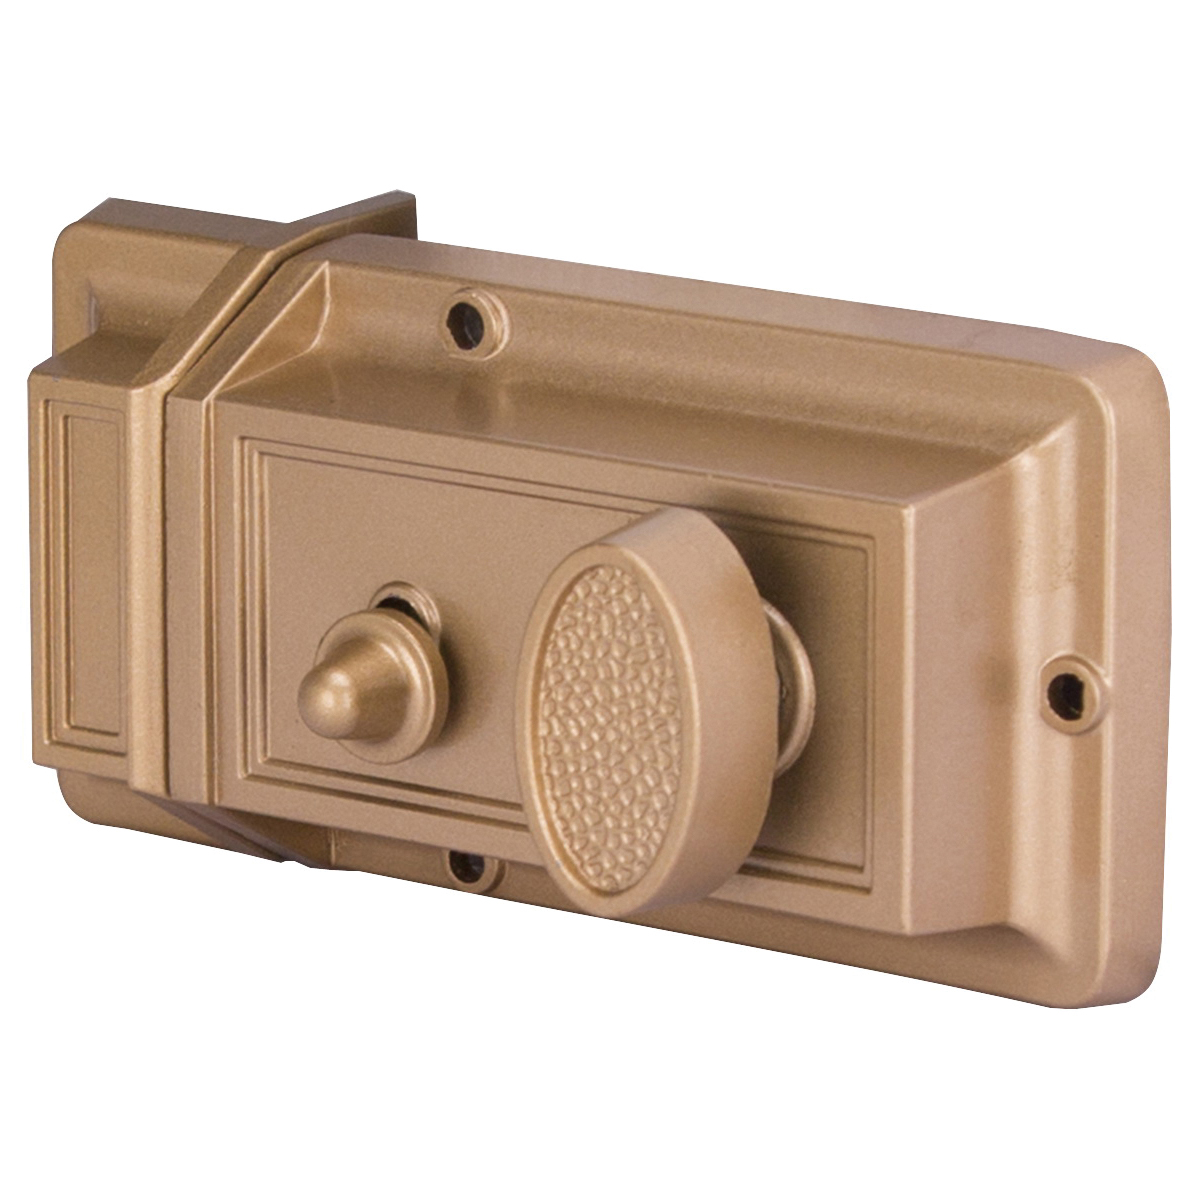 Picture of ProSource 6296453-PS Night Latch, Keyed Different Key, Brass, Kwikset Keyway